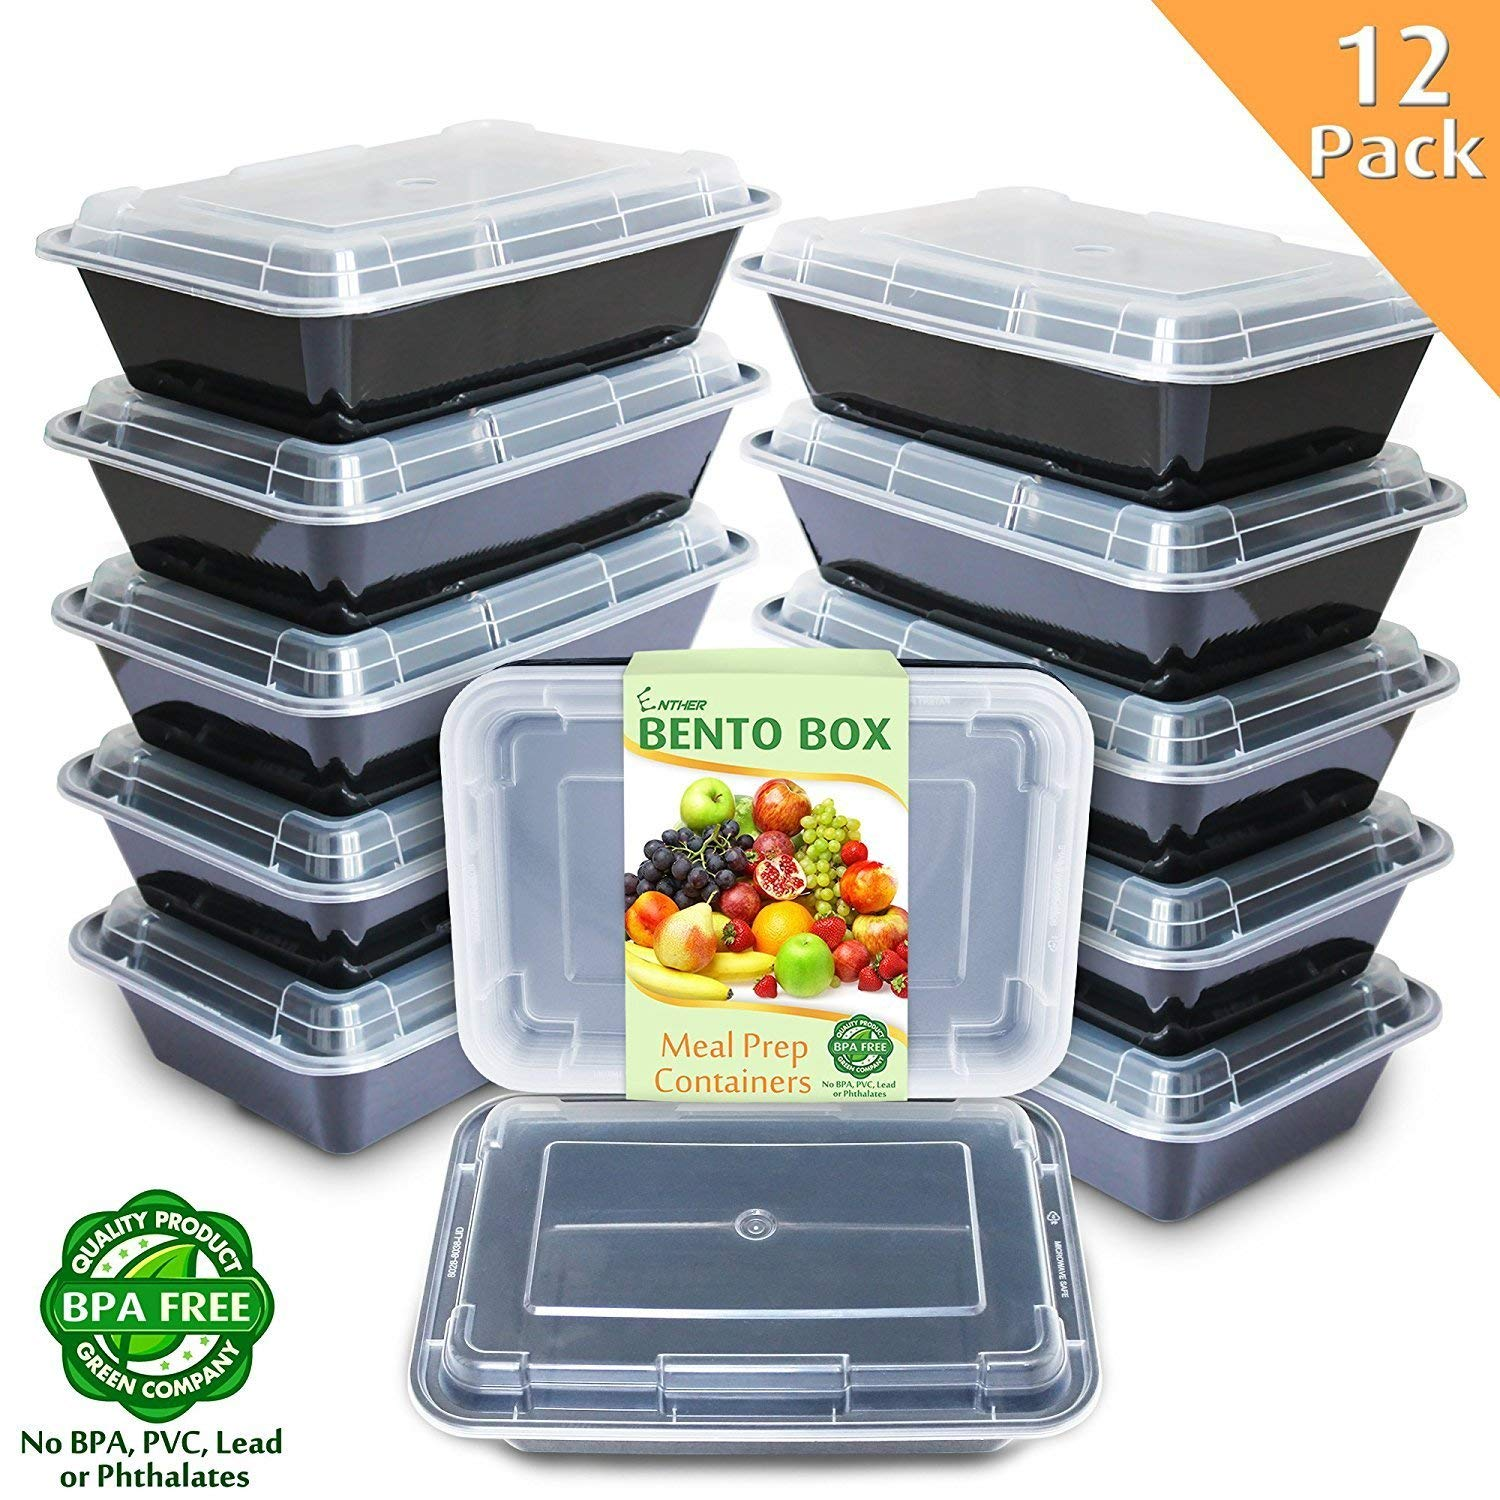 Enther Meal Prep Containers [12 Pack] Single 1 Compartment with Lids, Food Storage Bento Box | BPA Free | Stackable | Reusable Lunch Boxes